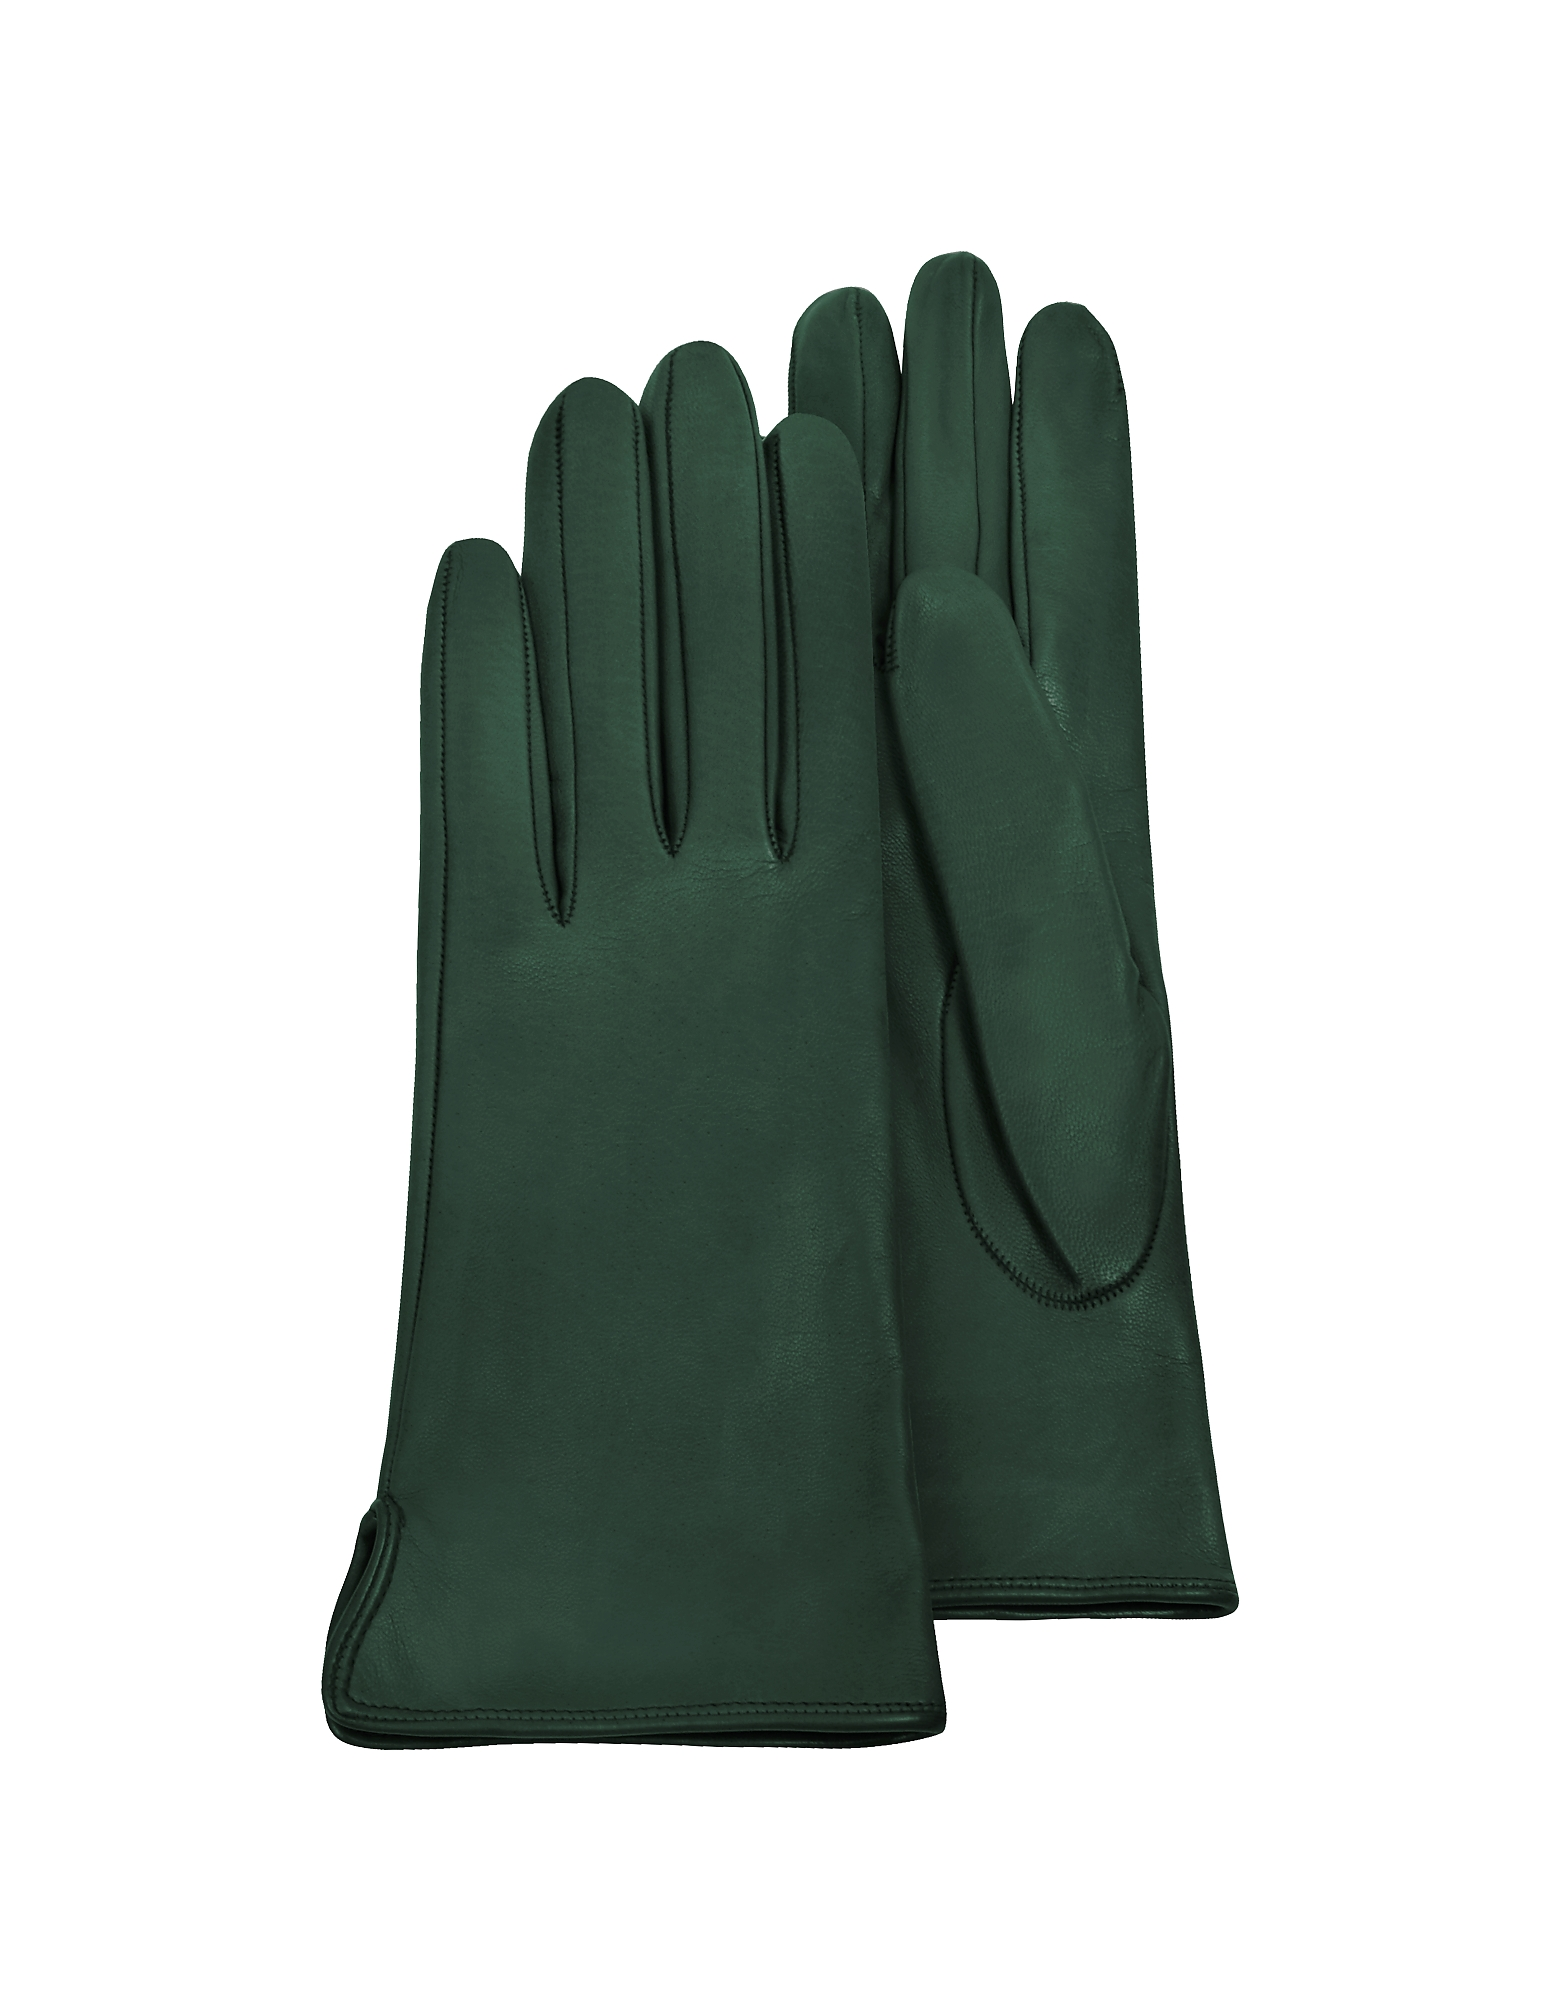 1940s Accessories: Belts, Gloves, Head Scarf Forzieri  Womens Gloves Forest Green Calf Leather Womens Gloves wSilk Lining $144.00 AT vintagedancer.com